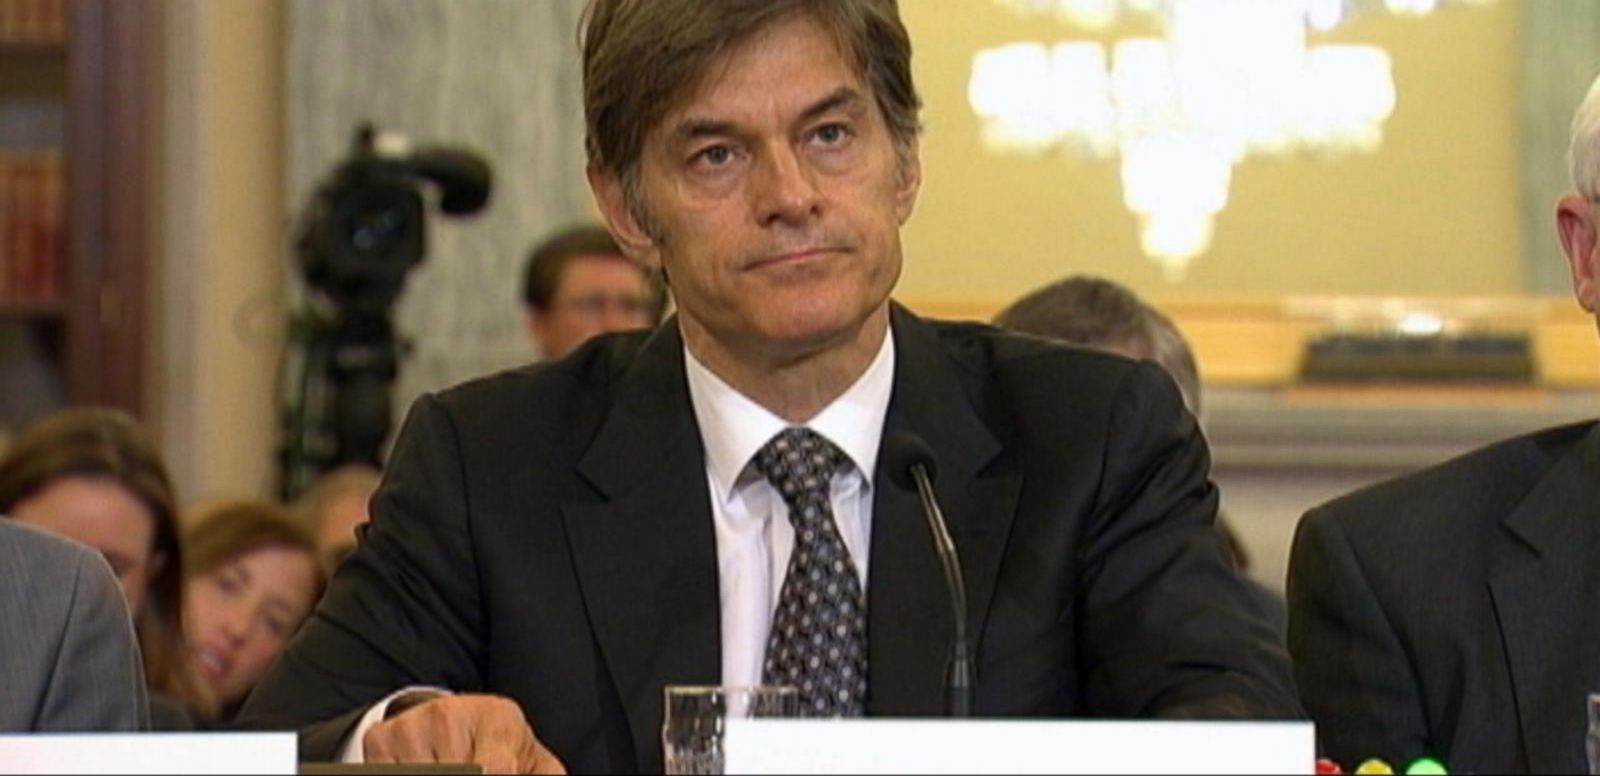 VIDEO: Letter Calls for Dr. Oz to Lose Position at Columbia University